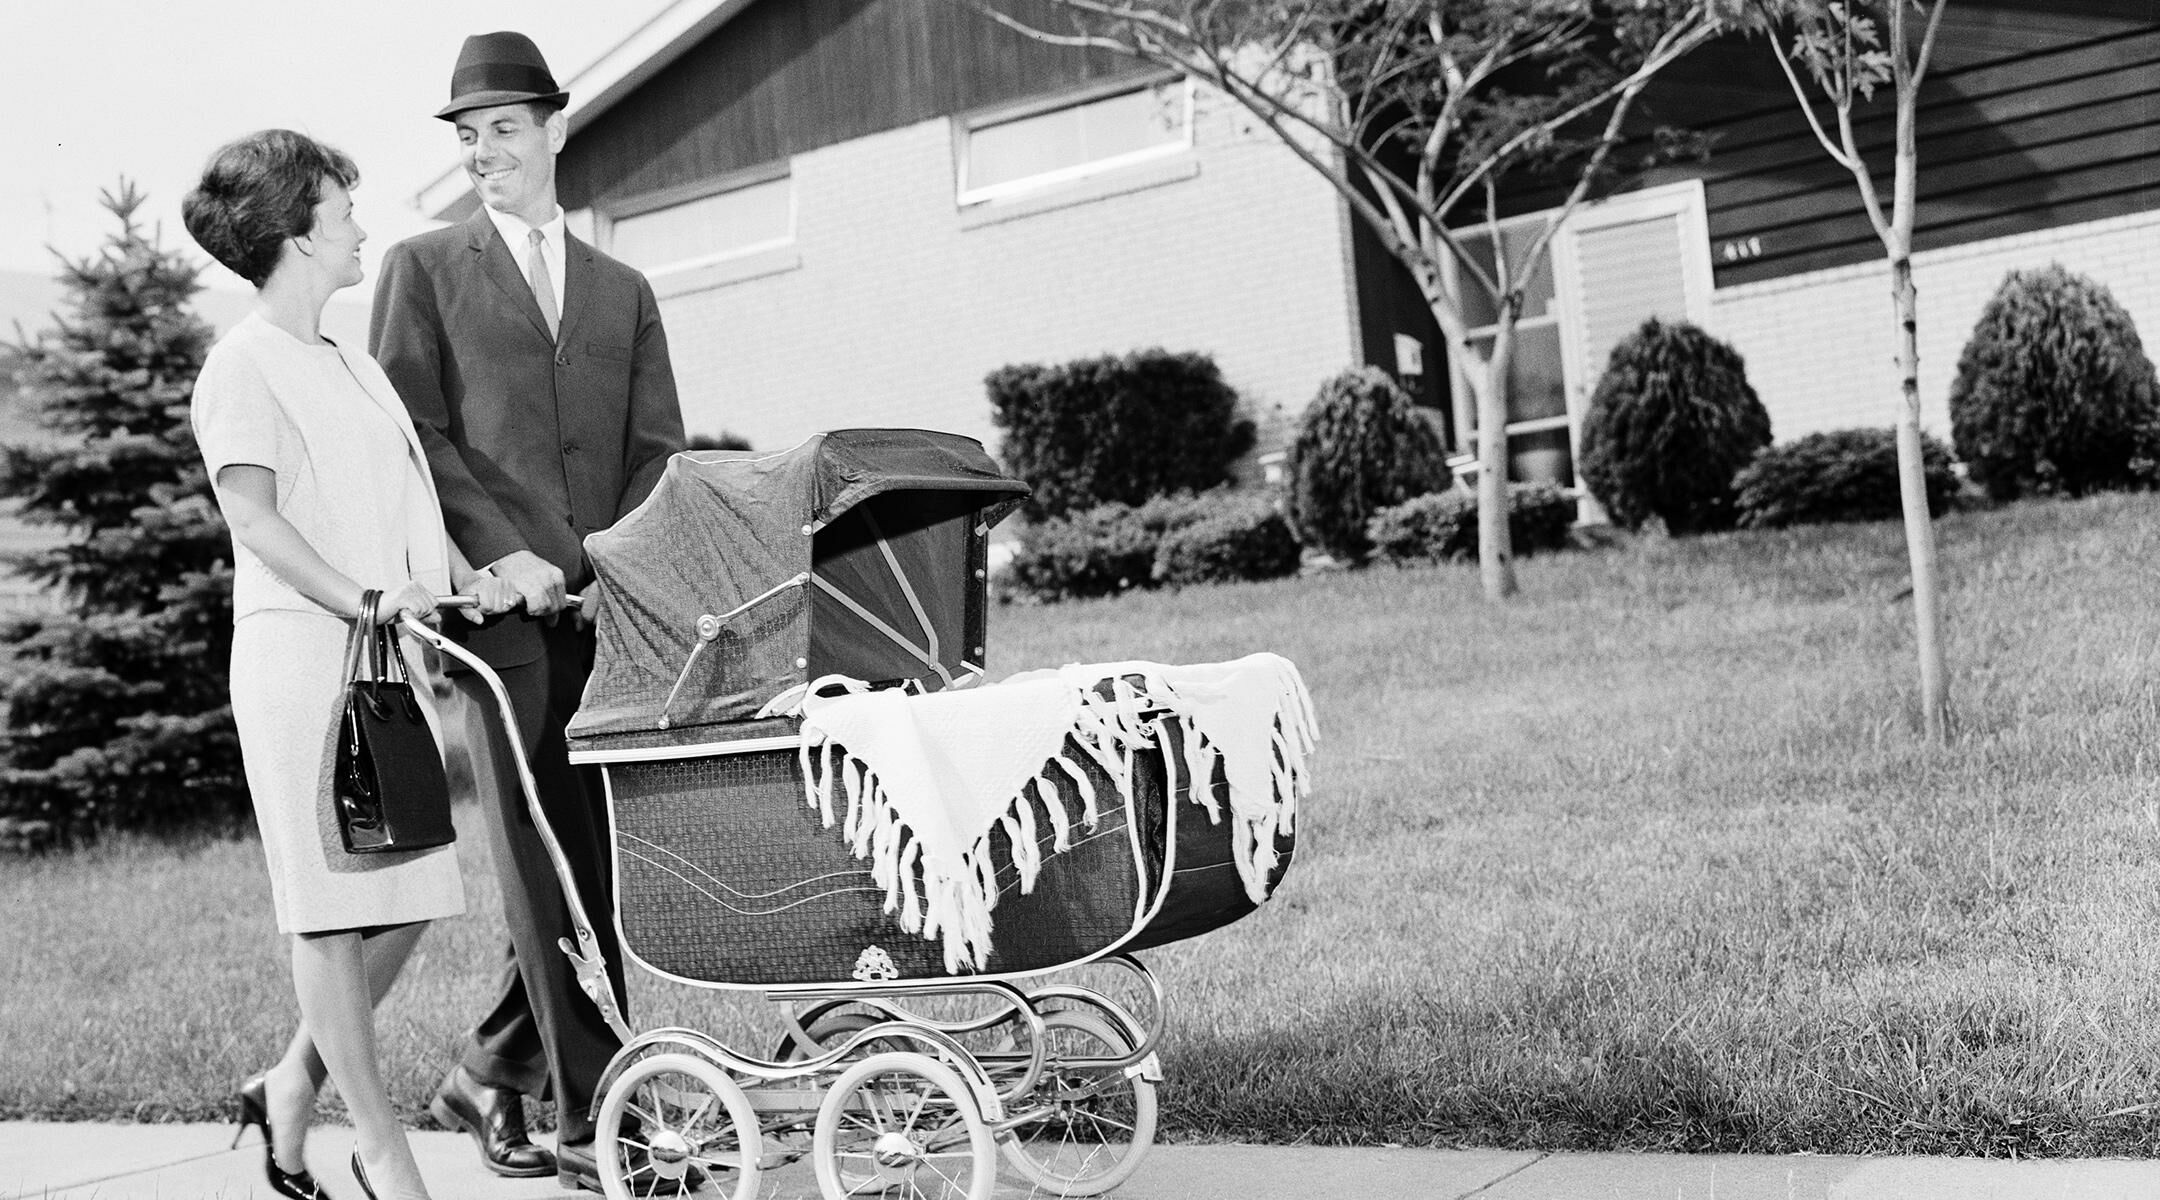 Having a Baby Before Marriage Is No Longer Tied to Divorce, ReportFinds